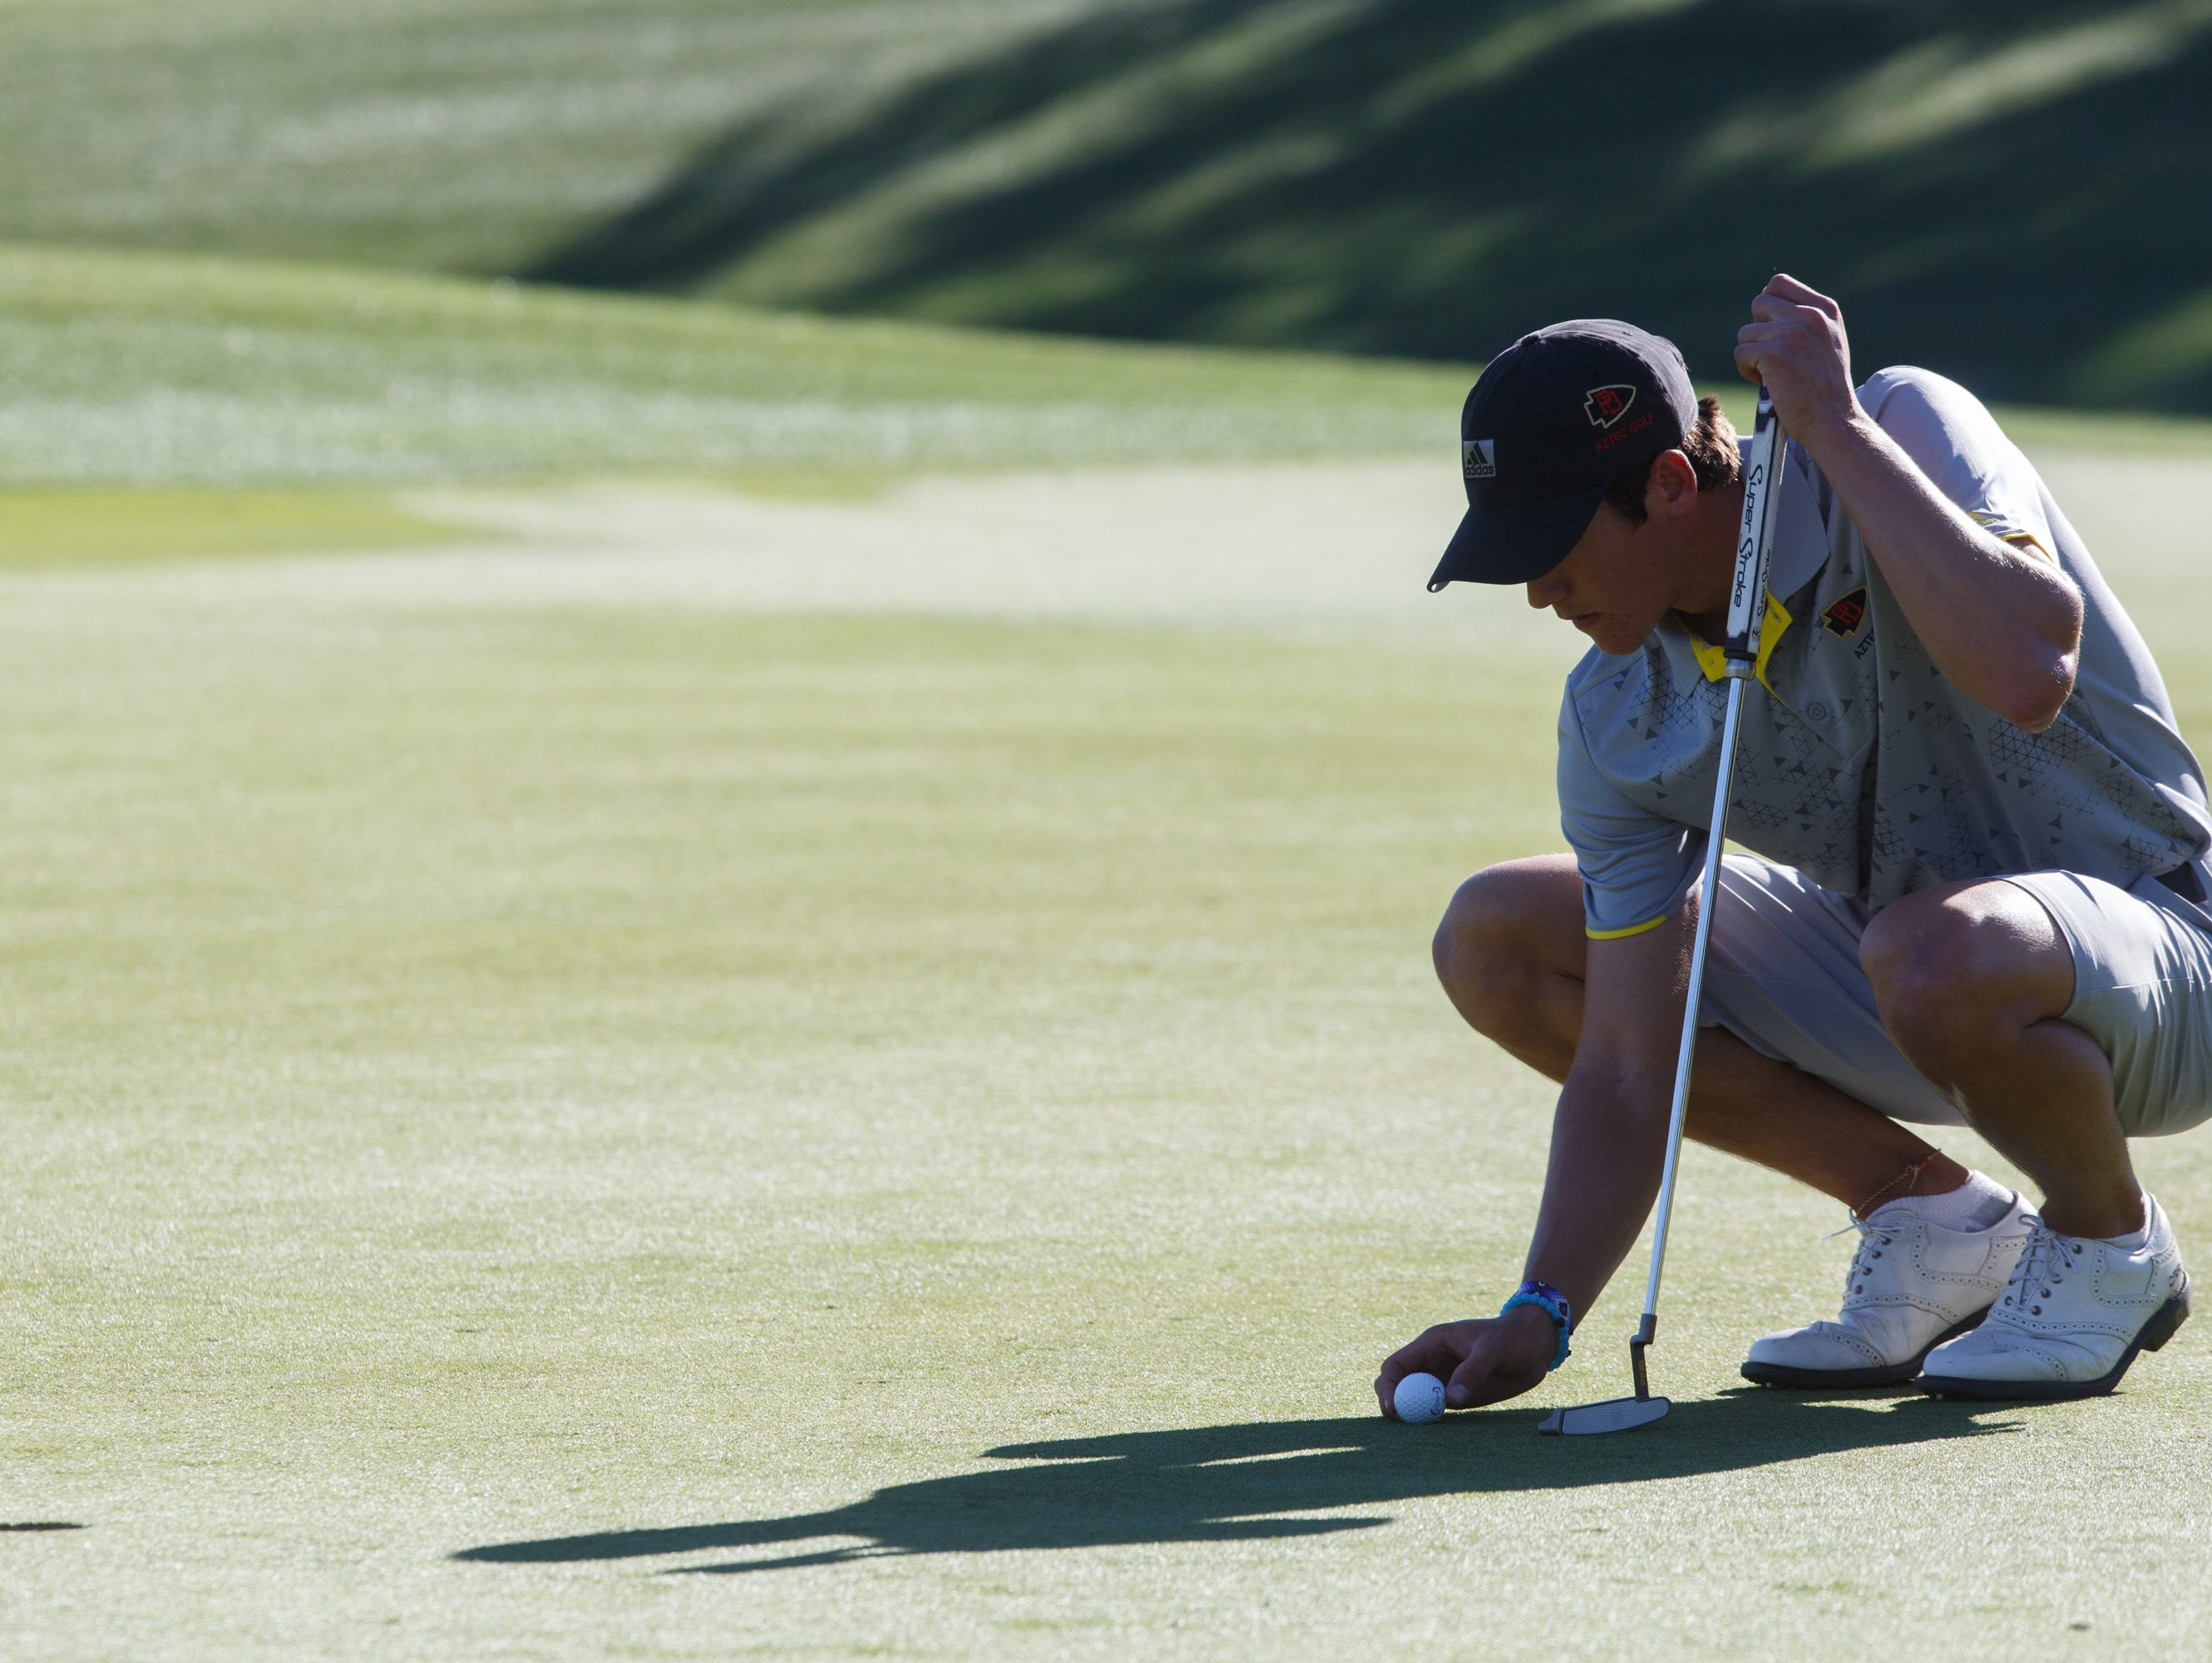 Charlie Reiter prepares for a putt in a game against Palm Desert at the Classic Club in Palm Desert, Calif., Tuesday, March 7, 2017.